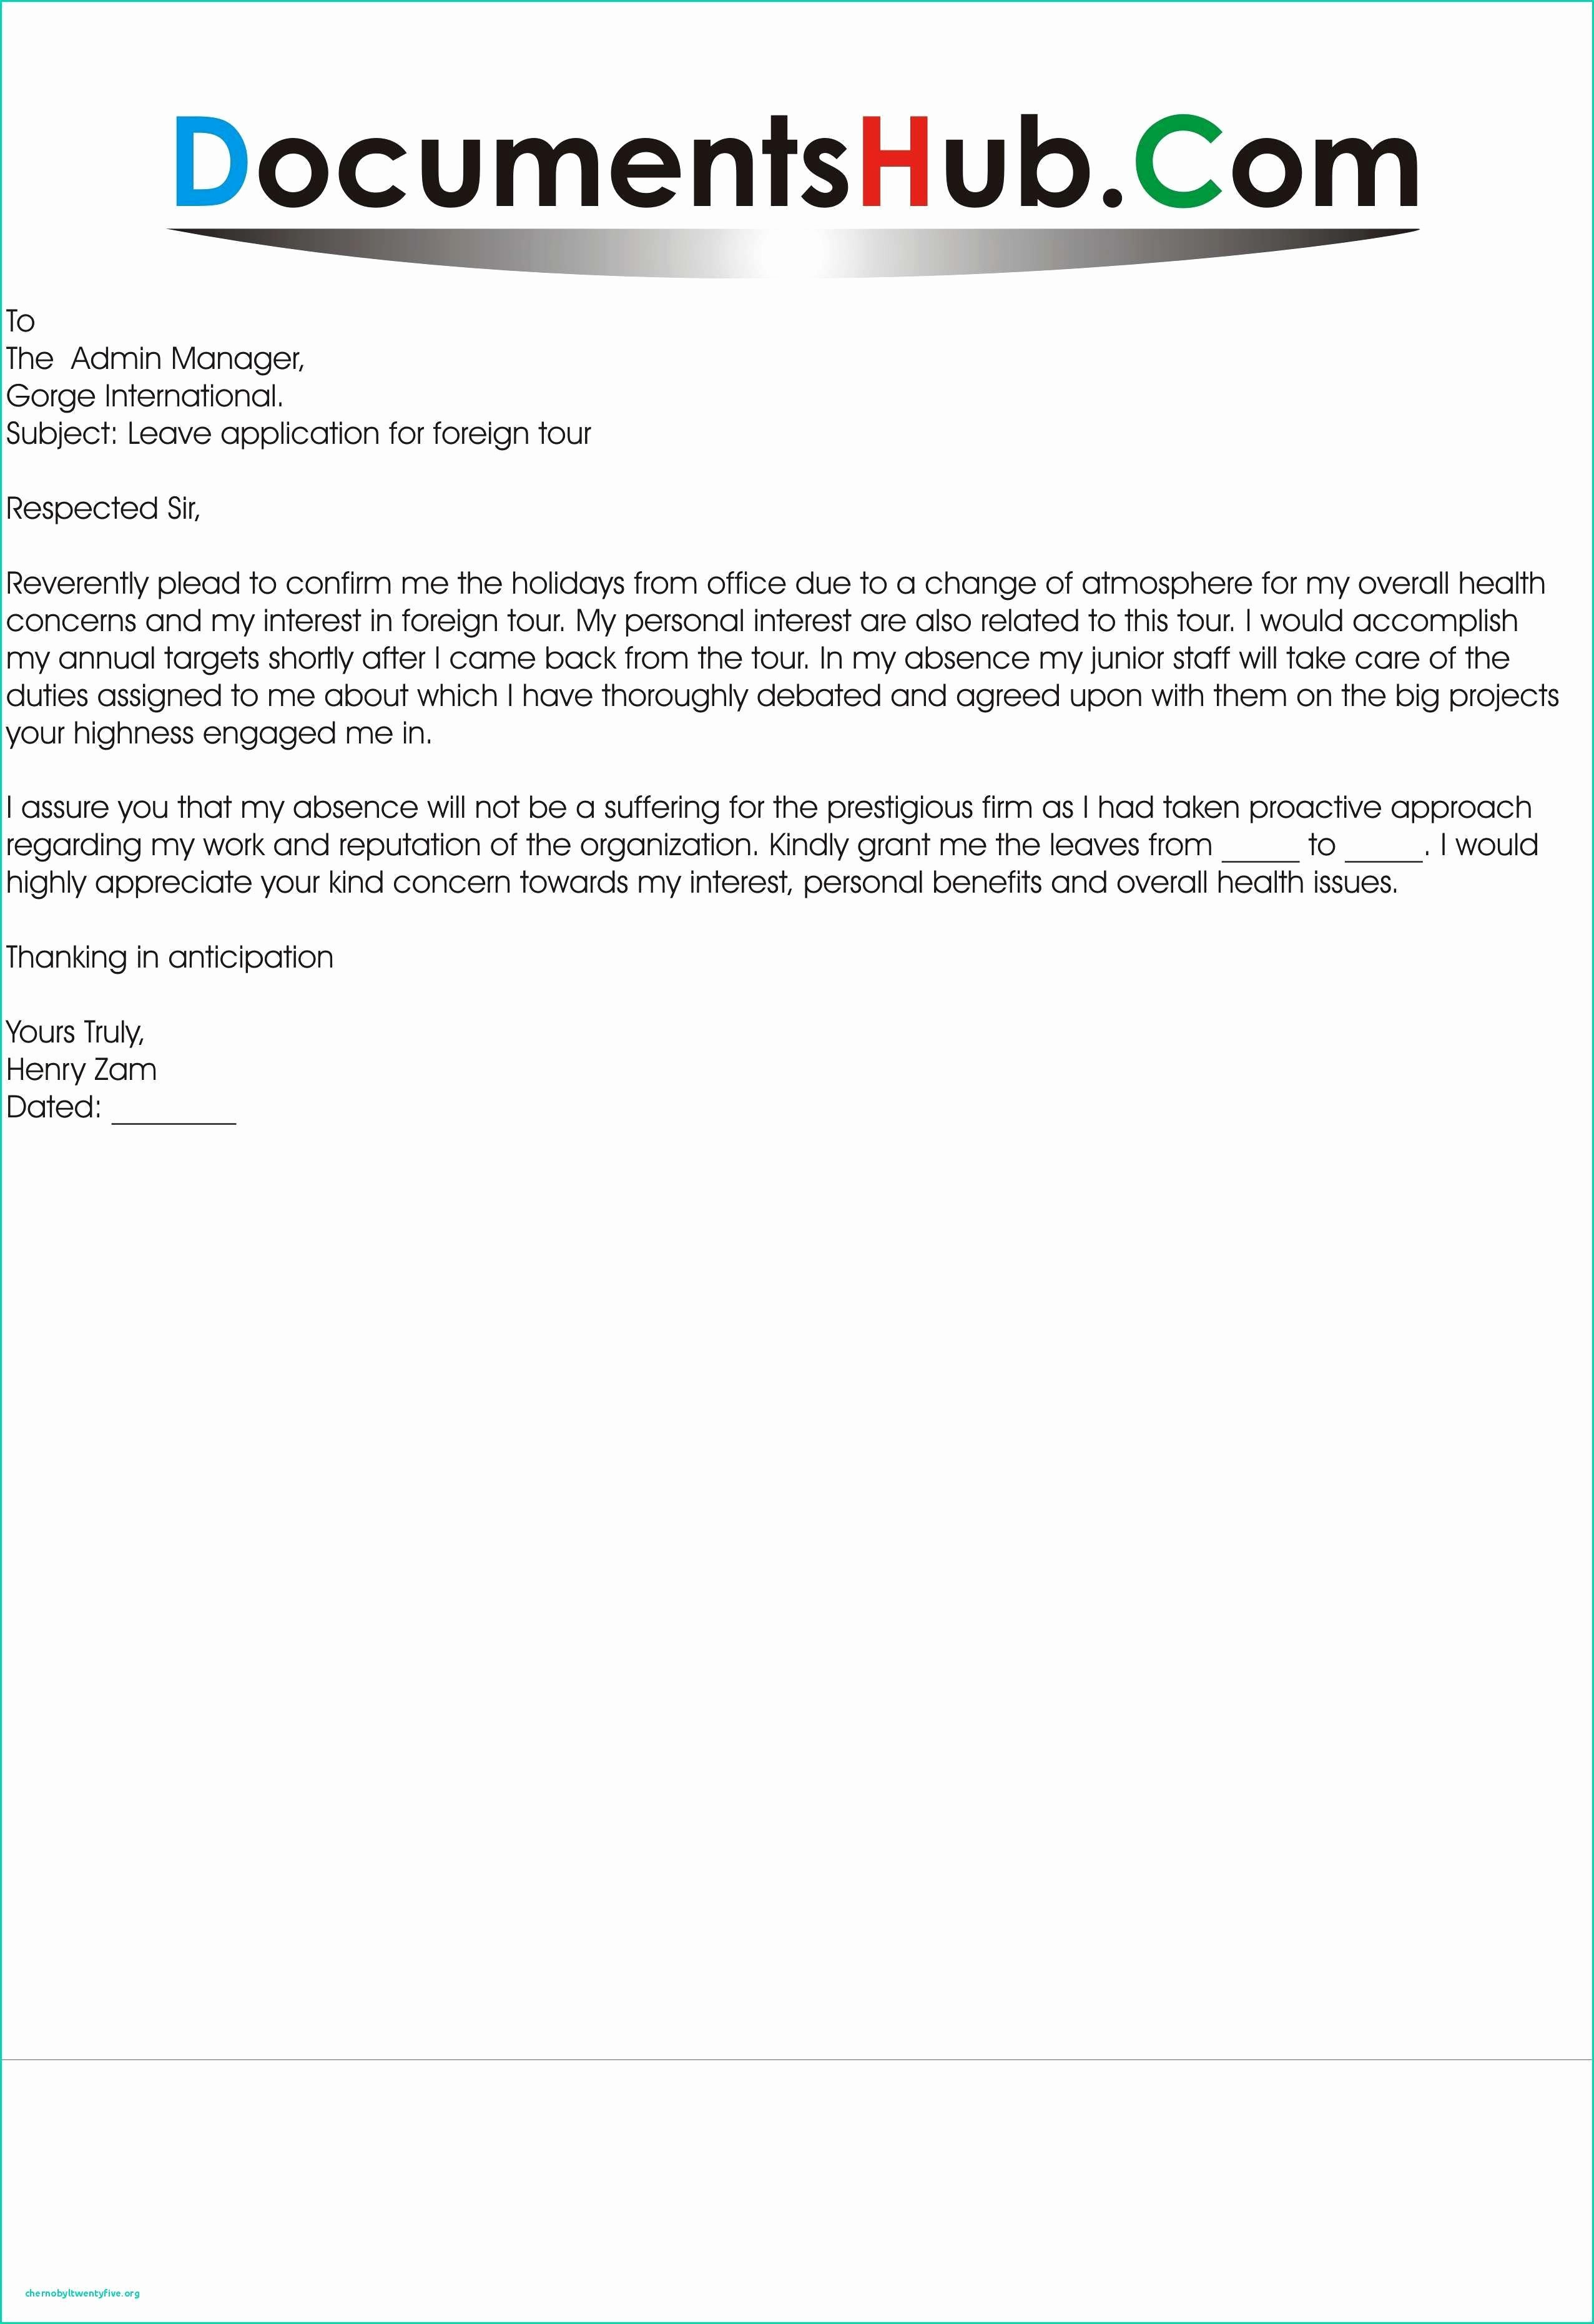 Resignation Letter Due to Harassment Awesome Sample Resignation Letter Due to Hostile Work Environment